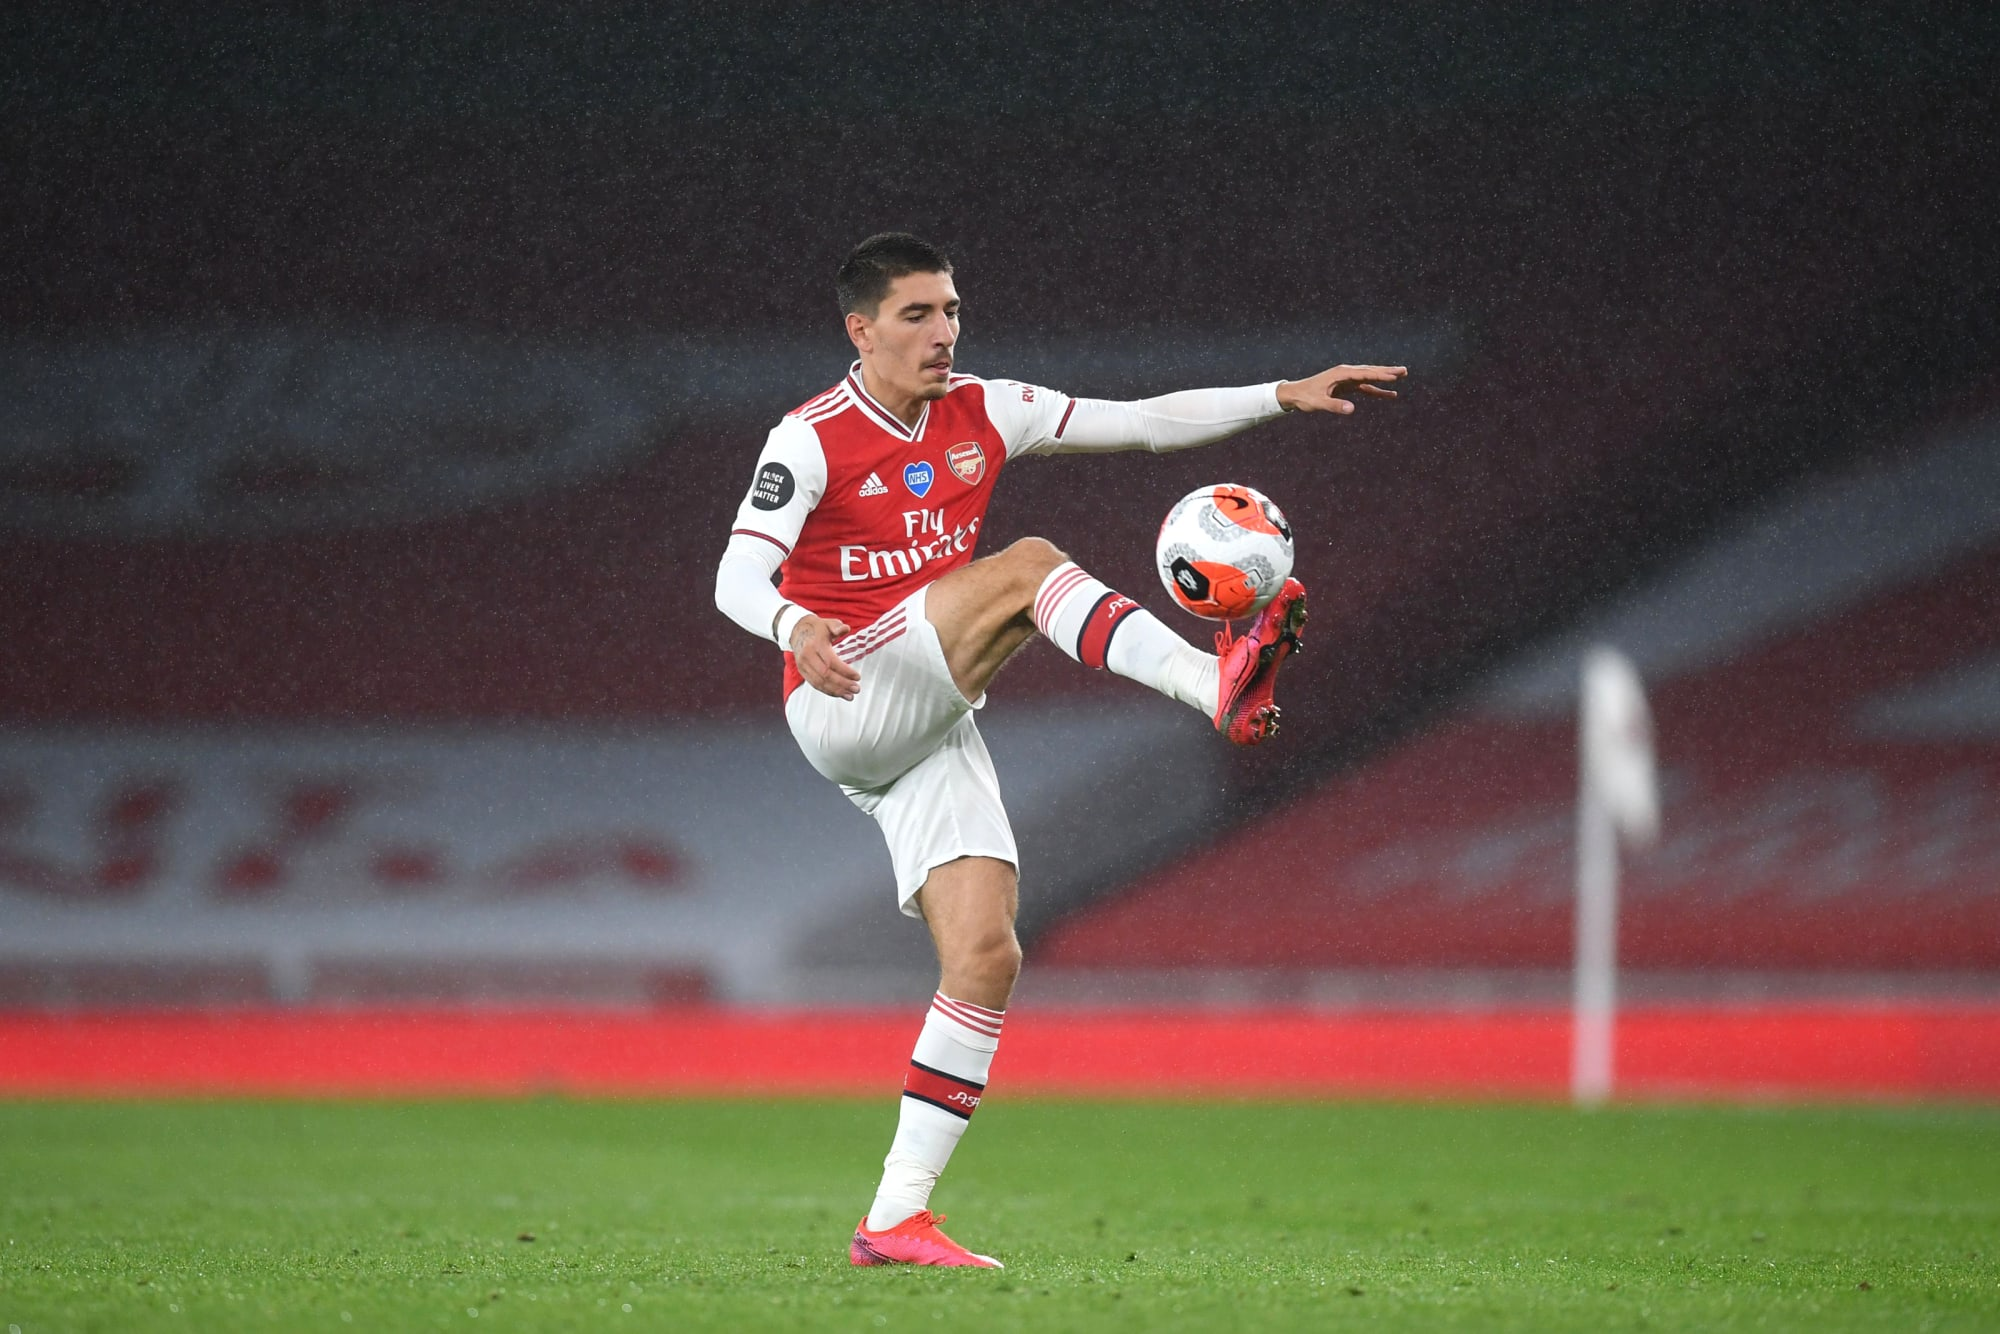 It's at the point in Hector Bellerin's career when he really needs to start establishing who he is on a regular basis. He's no longer the prospe